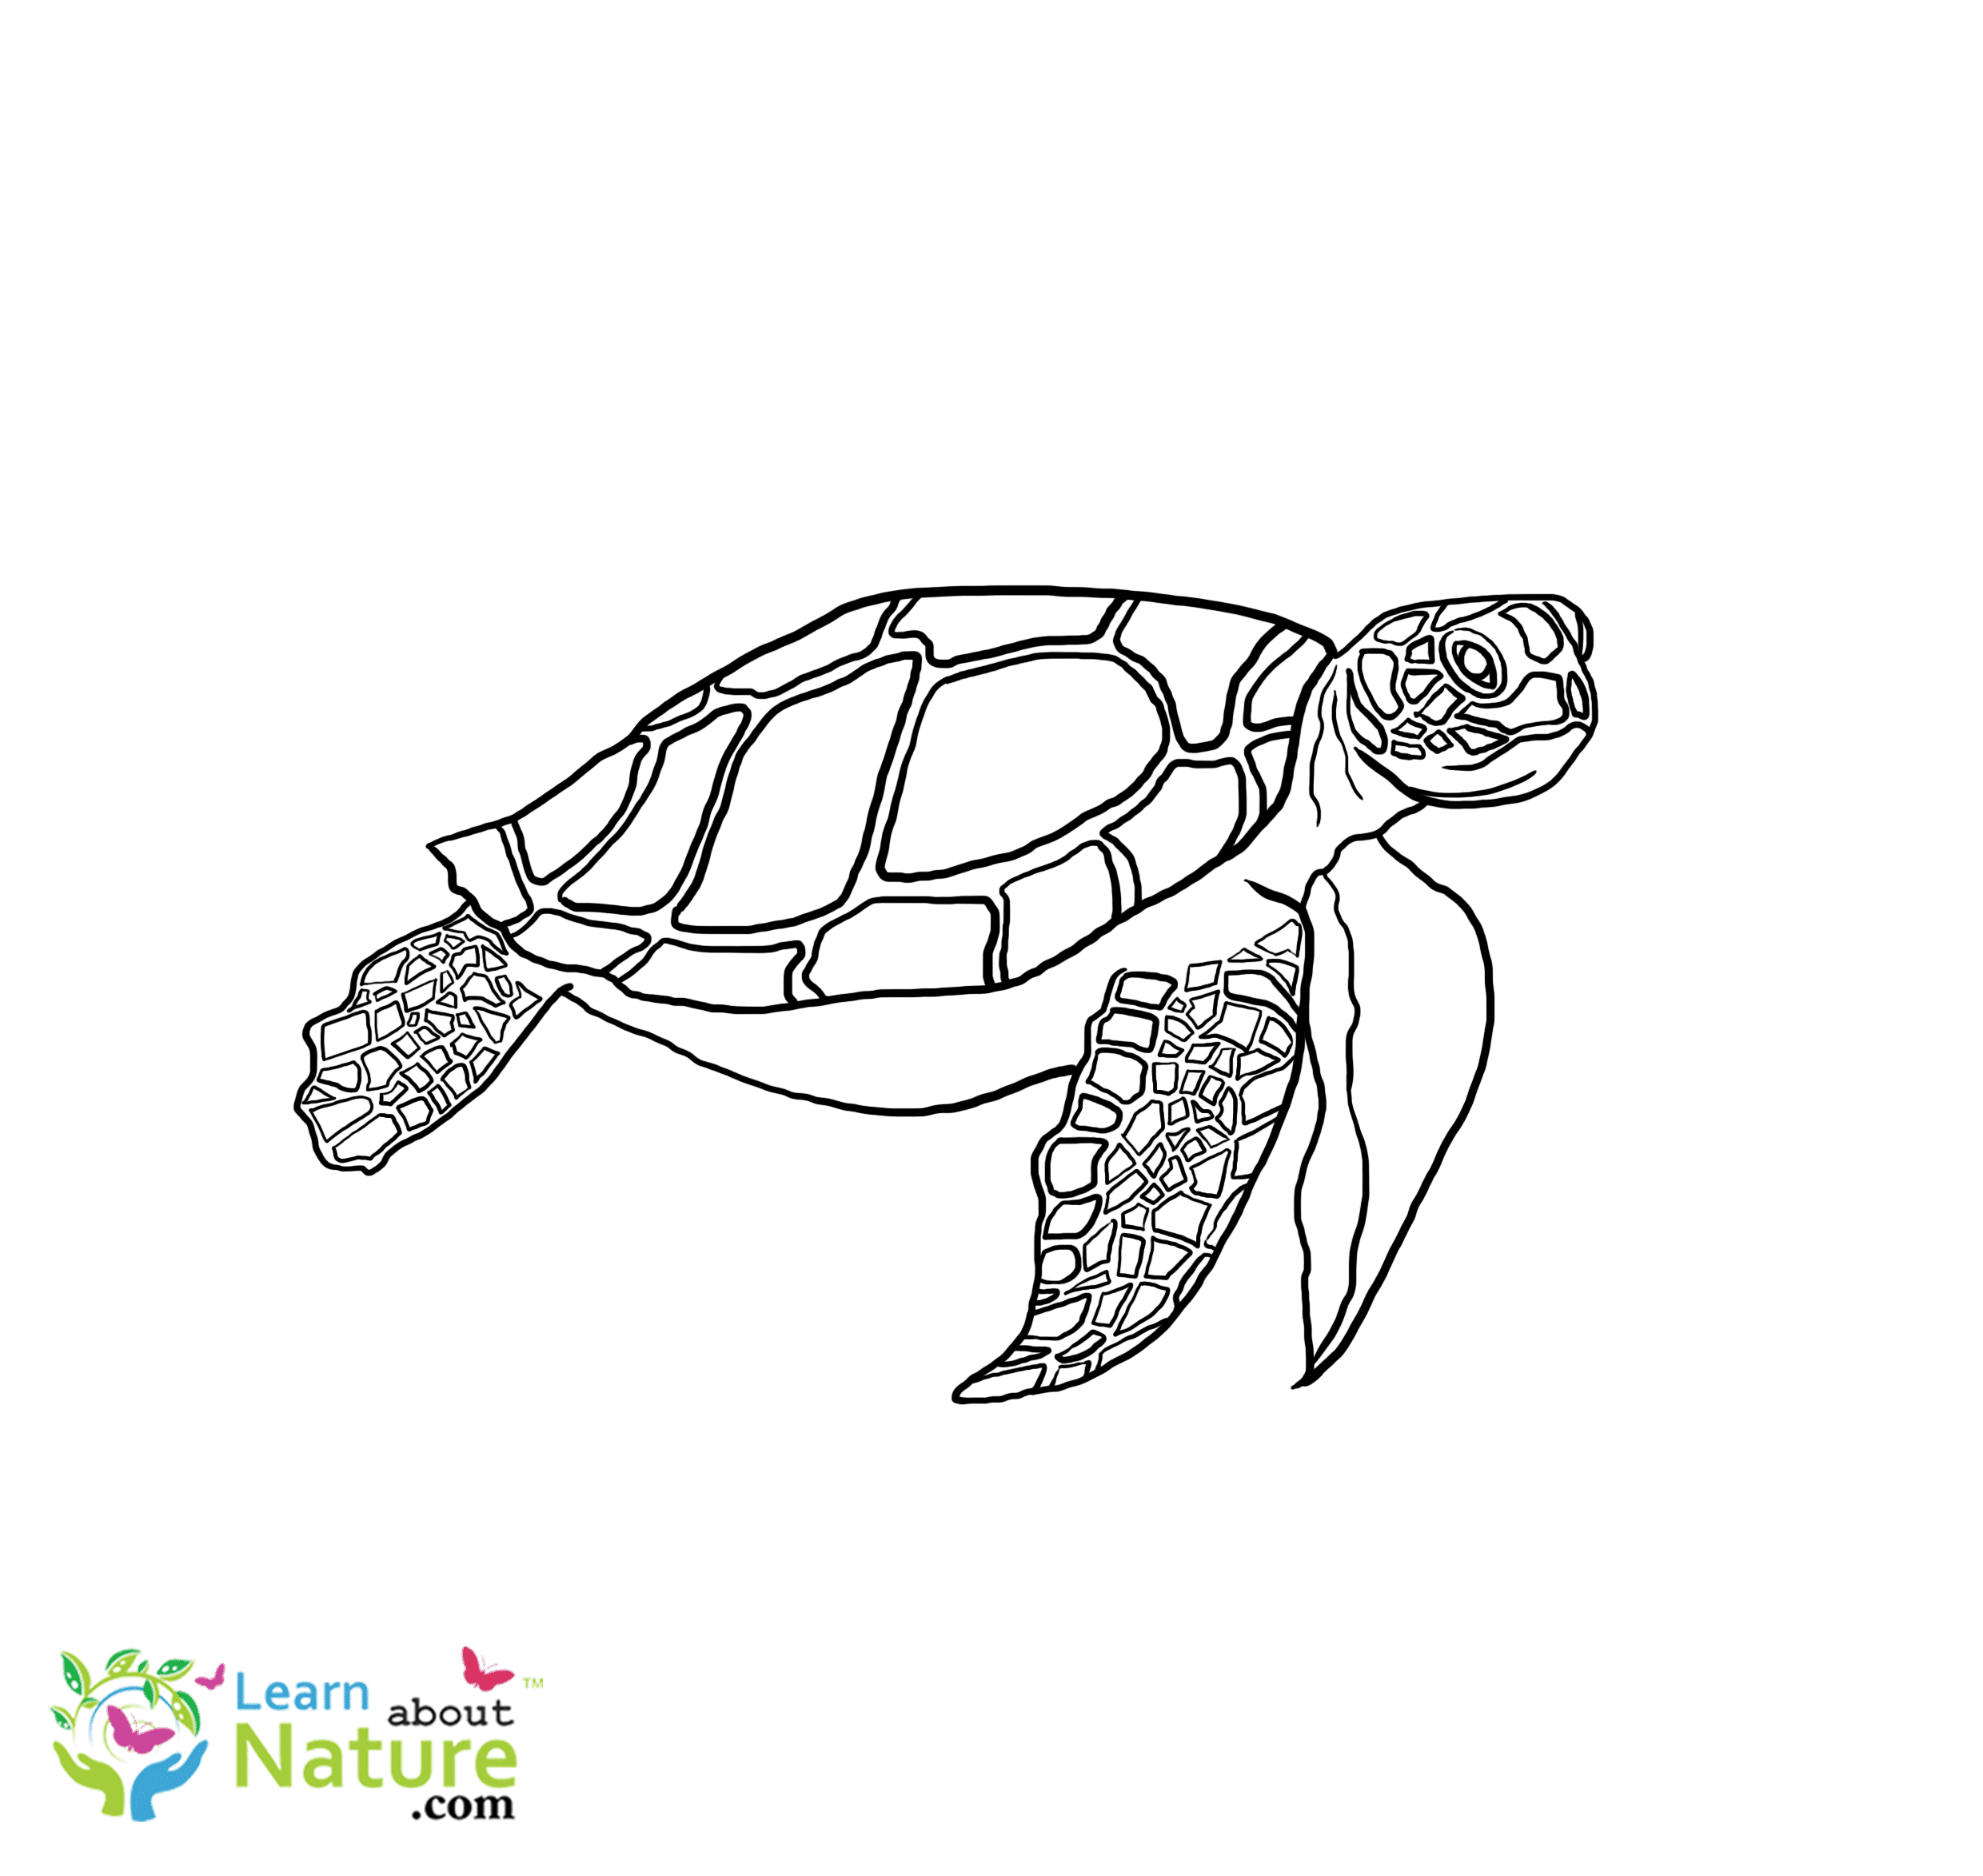 Three Sea Turtles Coloring Page – Mermaid Coloring Pages | 2346x2480